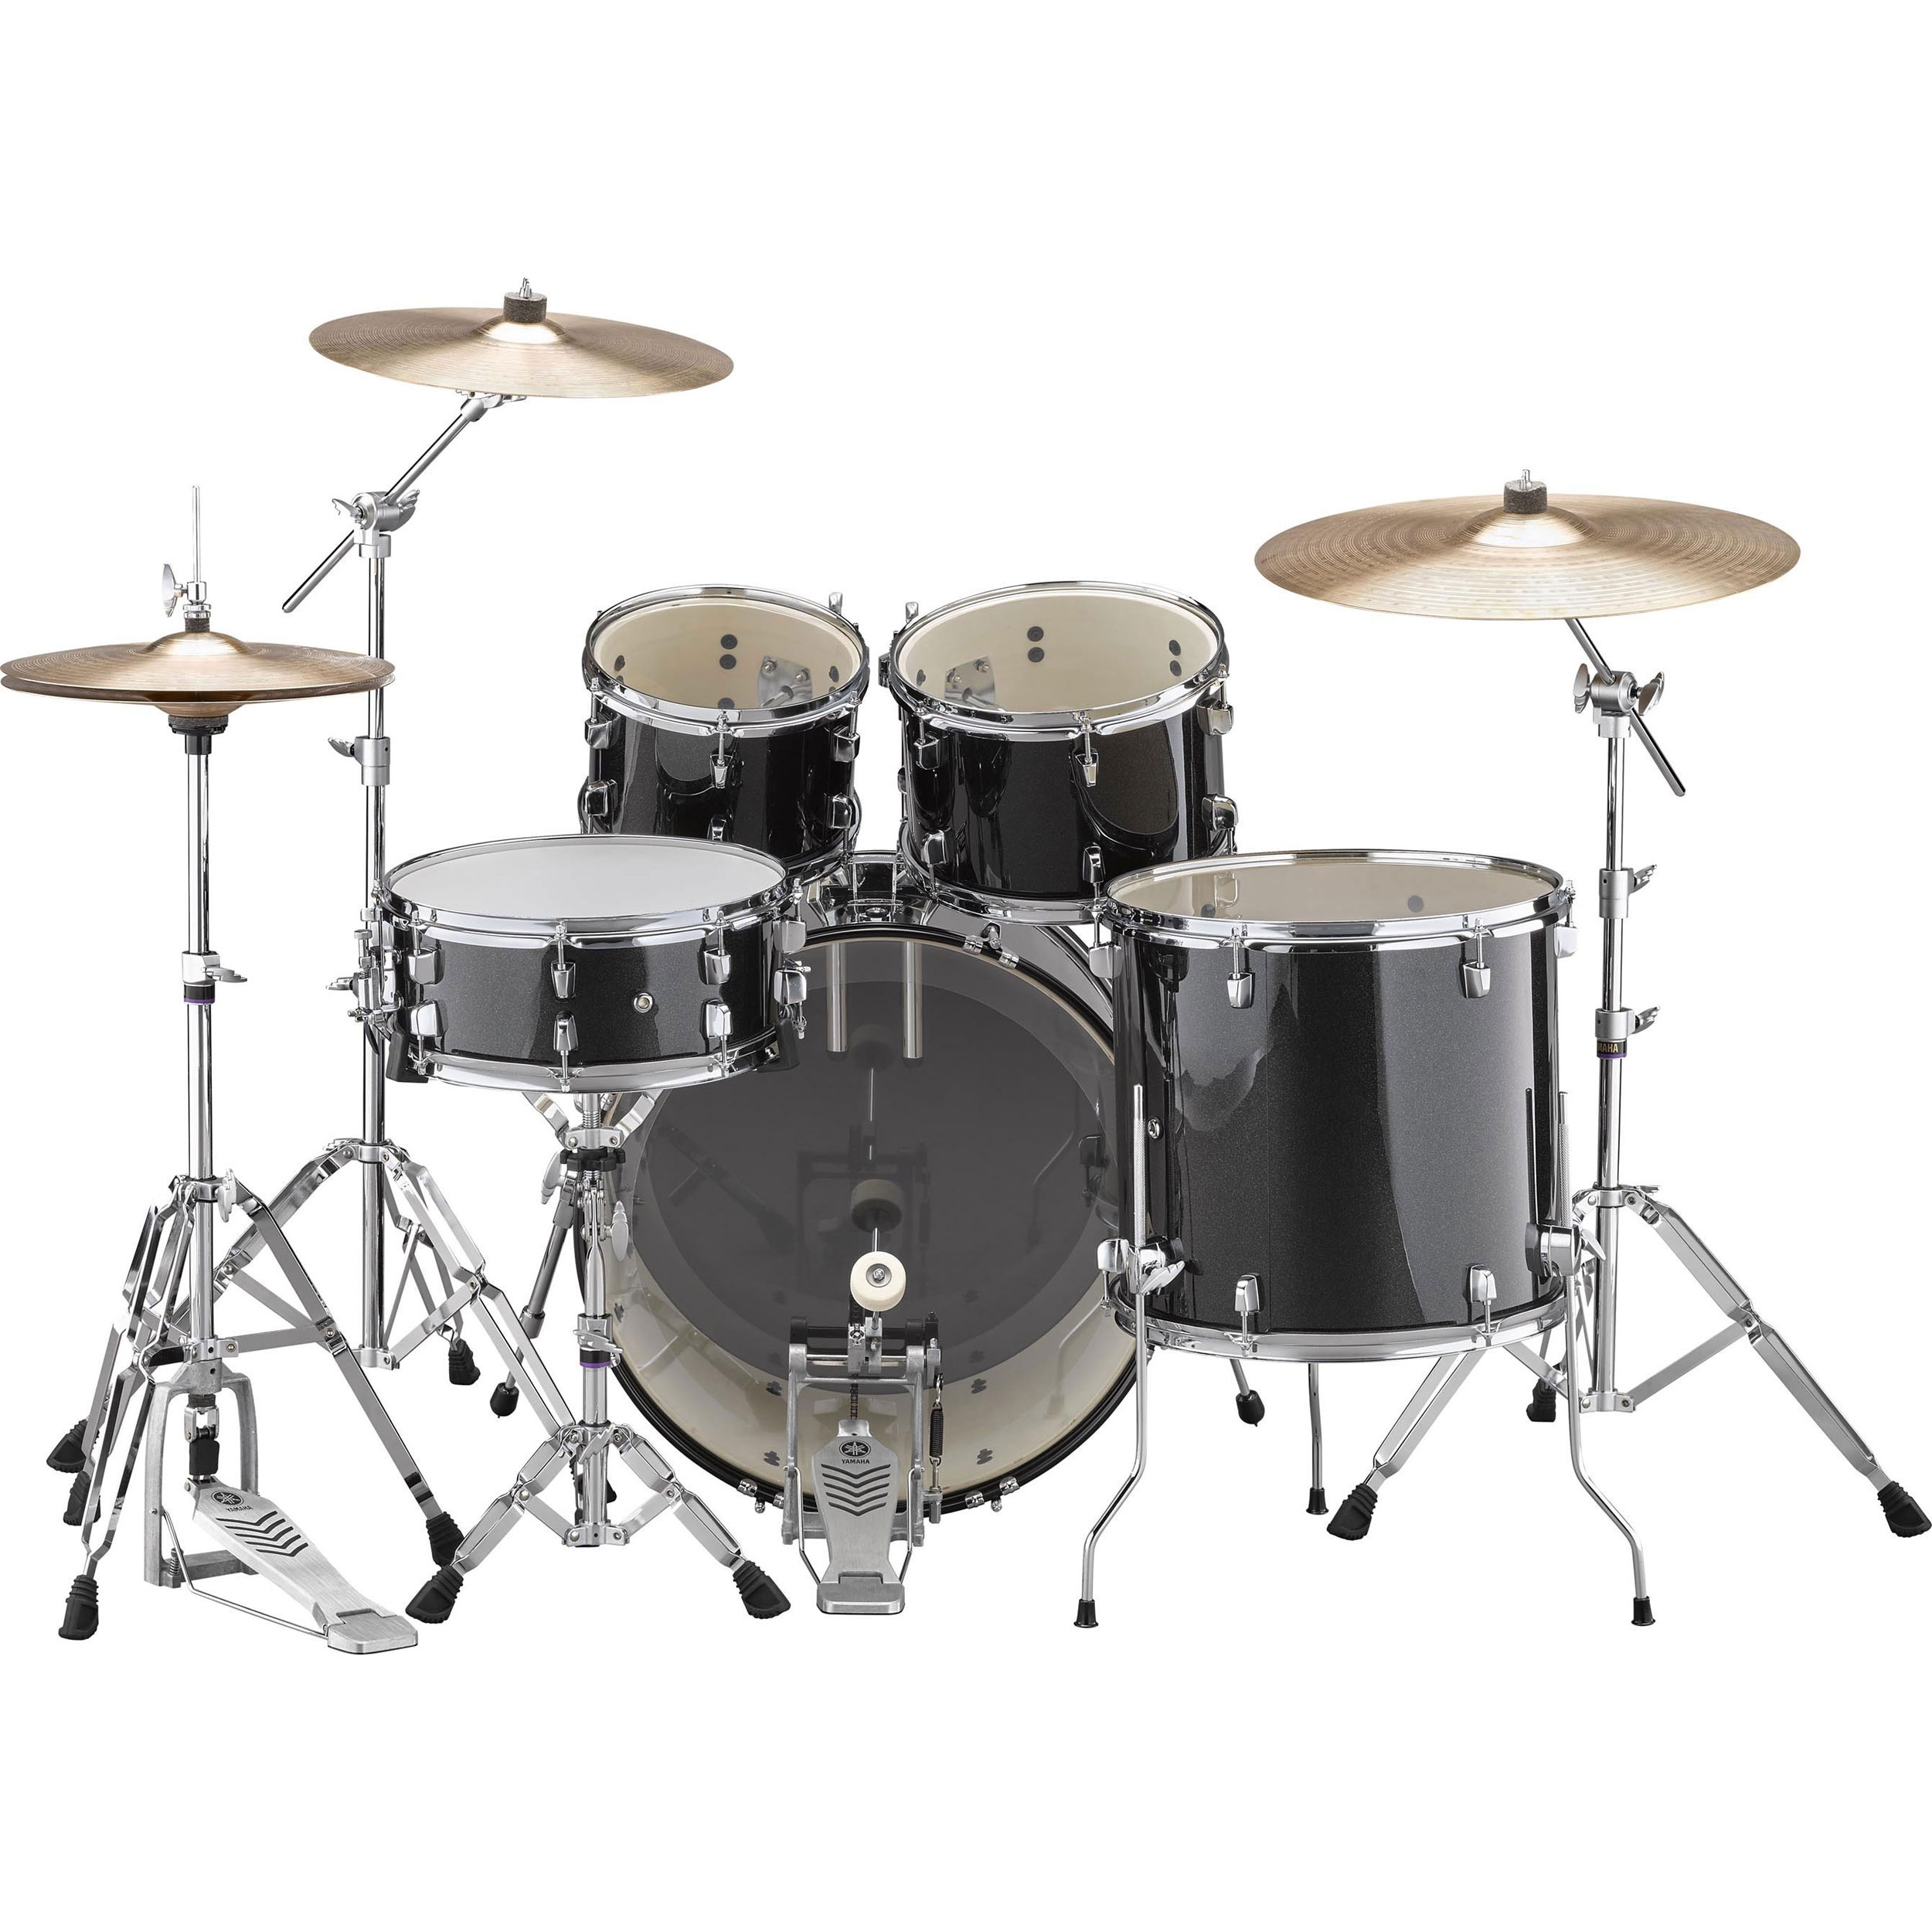 yamaha rydeen 5 piece drum set with hardware cymbals 22 bass 10 12 16 toms 14 snare. Black Bedroom Furniture Sets. Home Design Ideas